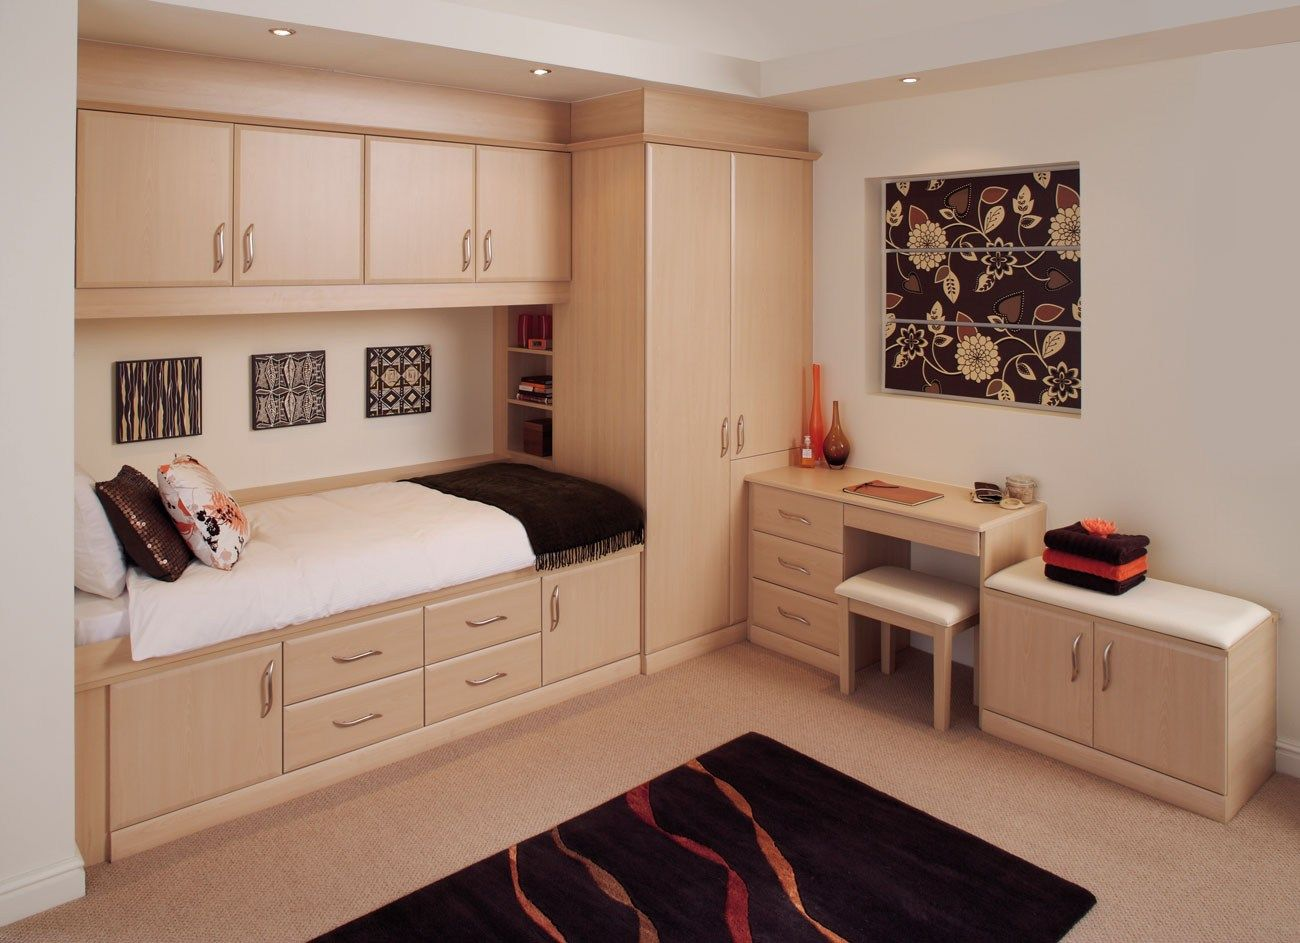 Pin By Shelly J On Home Ideas Fitted Bedroom Furniture Fitted Bedrooms Small Apartment Bedrooms